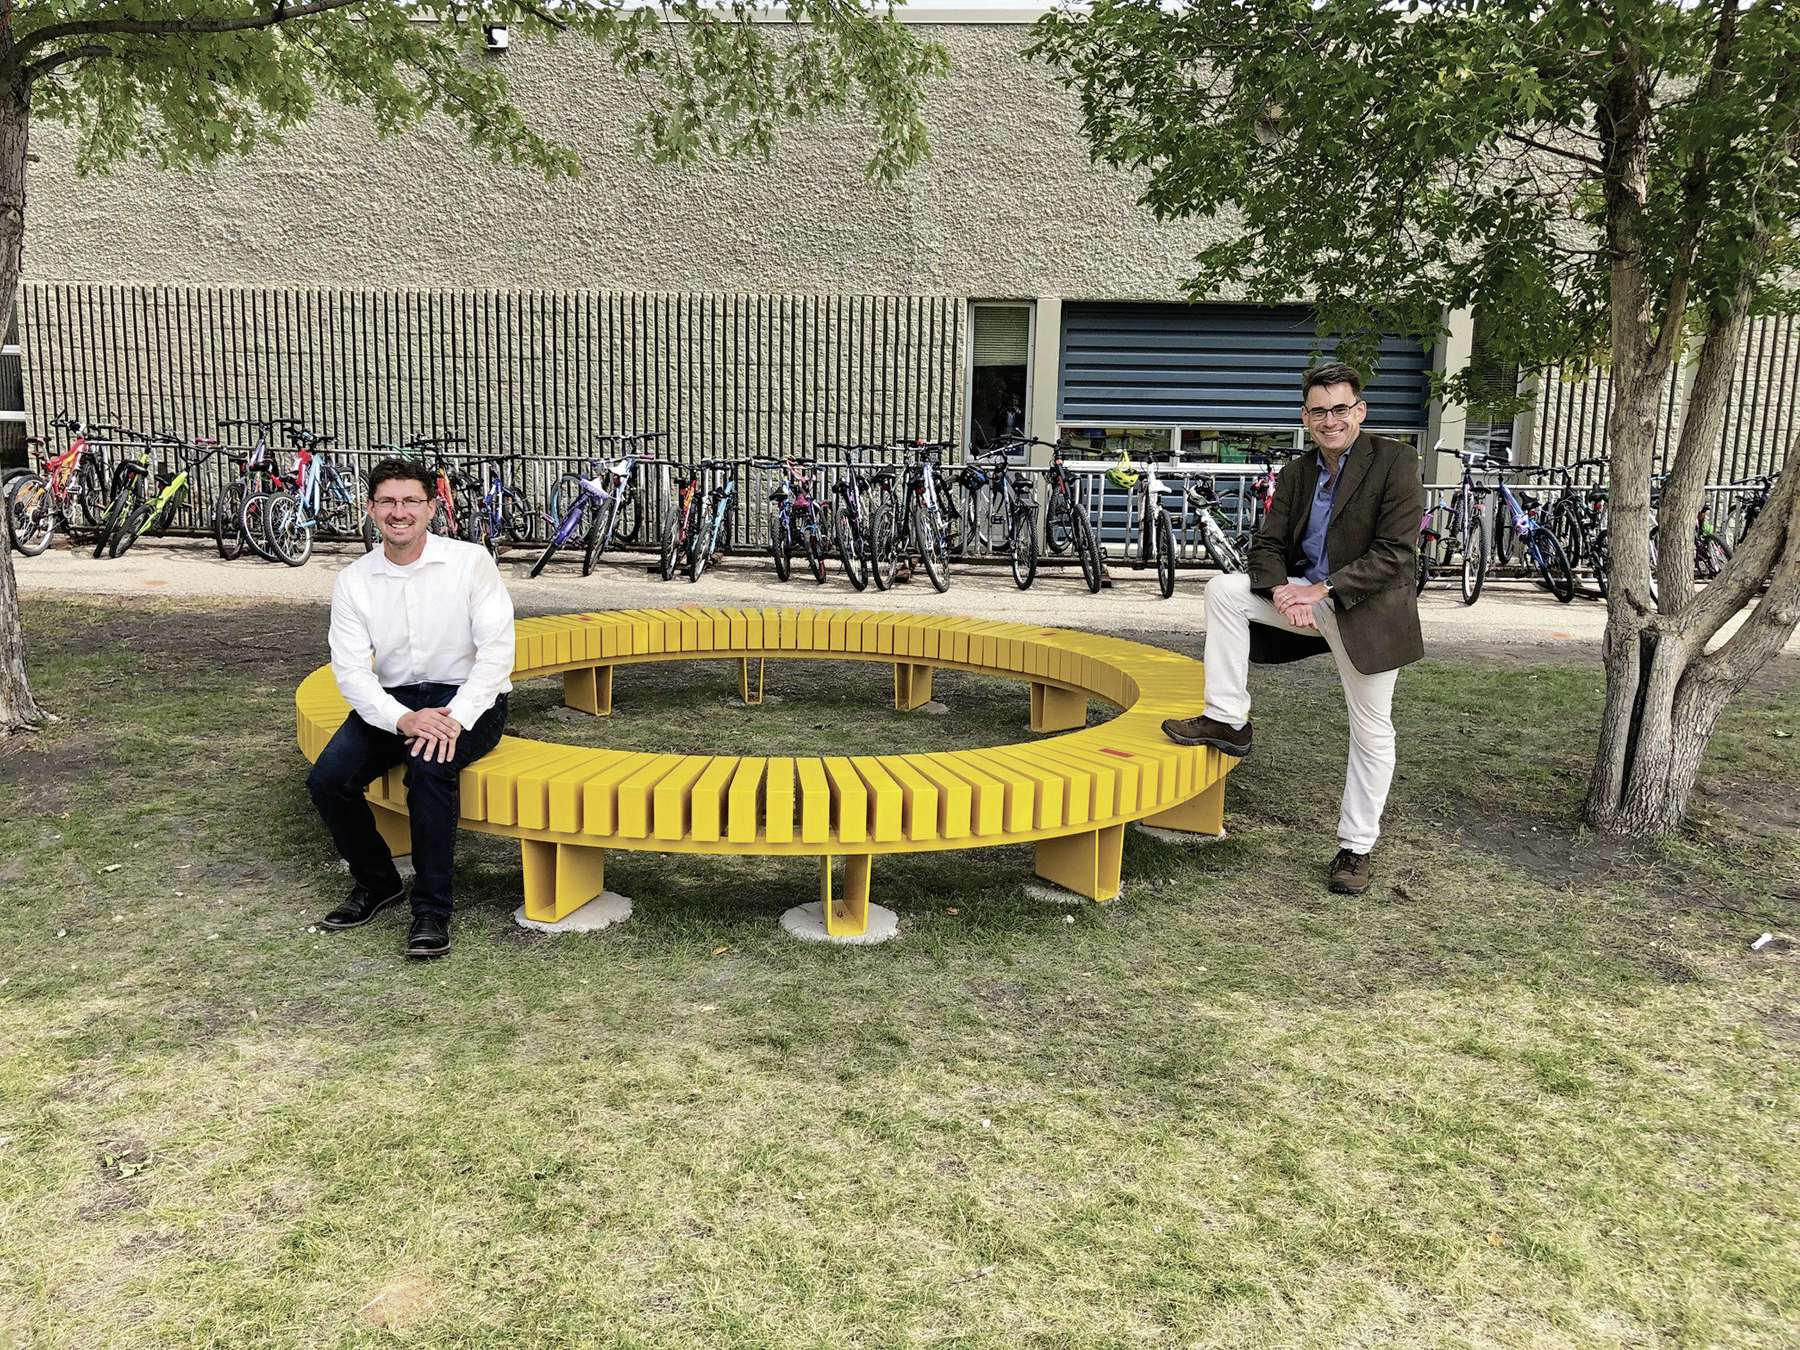 City councillors Matt Allard (St. Boniface, at left) and Brian Mayes show off the new circular bench at École Guyot that they funded.